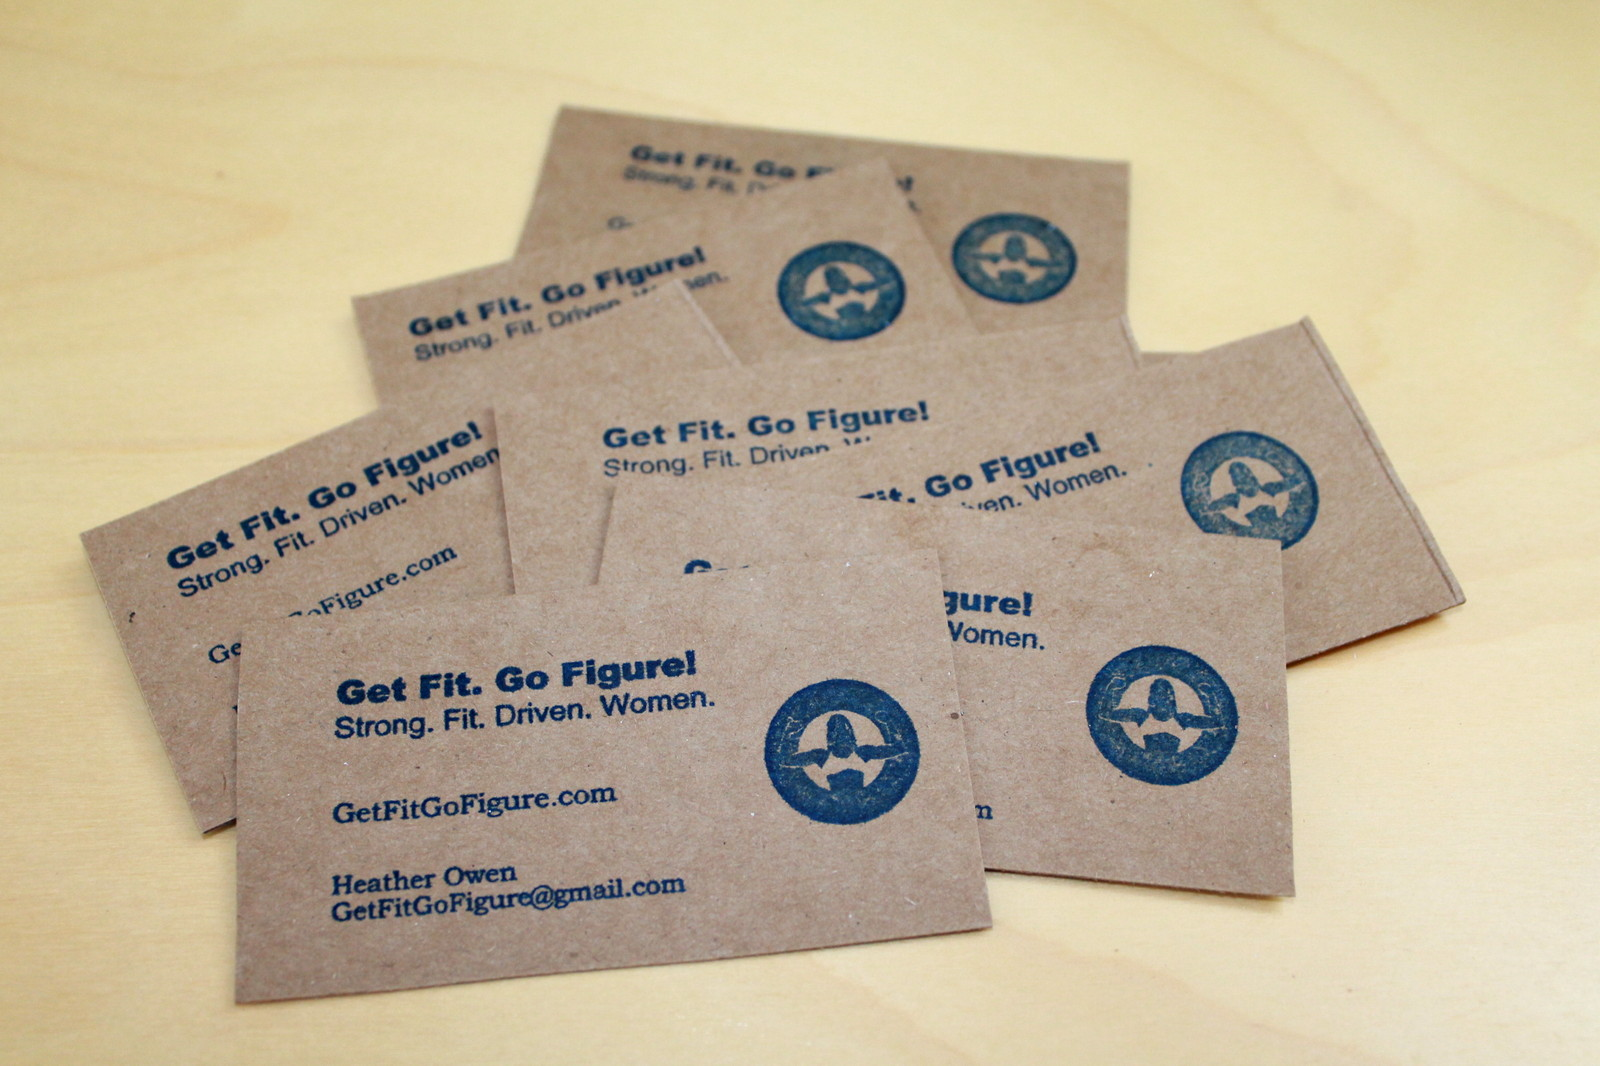 3 easy steps to diy recycled business cards cheap and easy get 3 easy steps to diy recycled business cards cheap and easy reheart Images